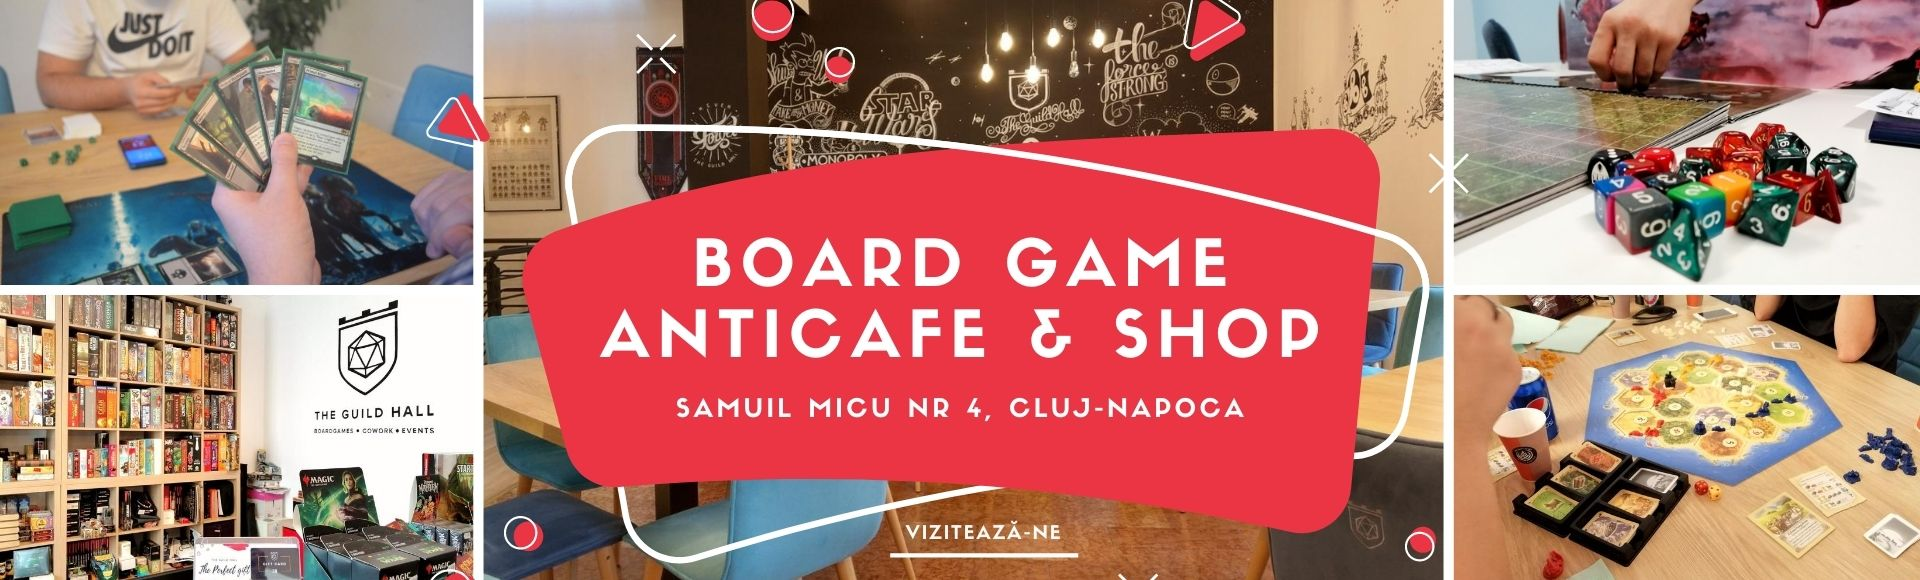 Board Game Anticafe